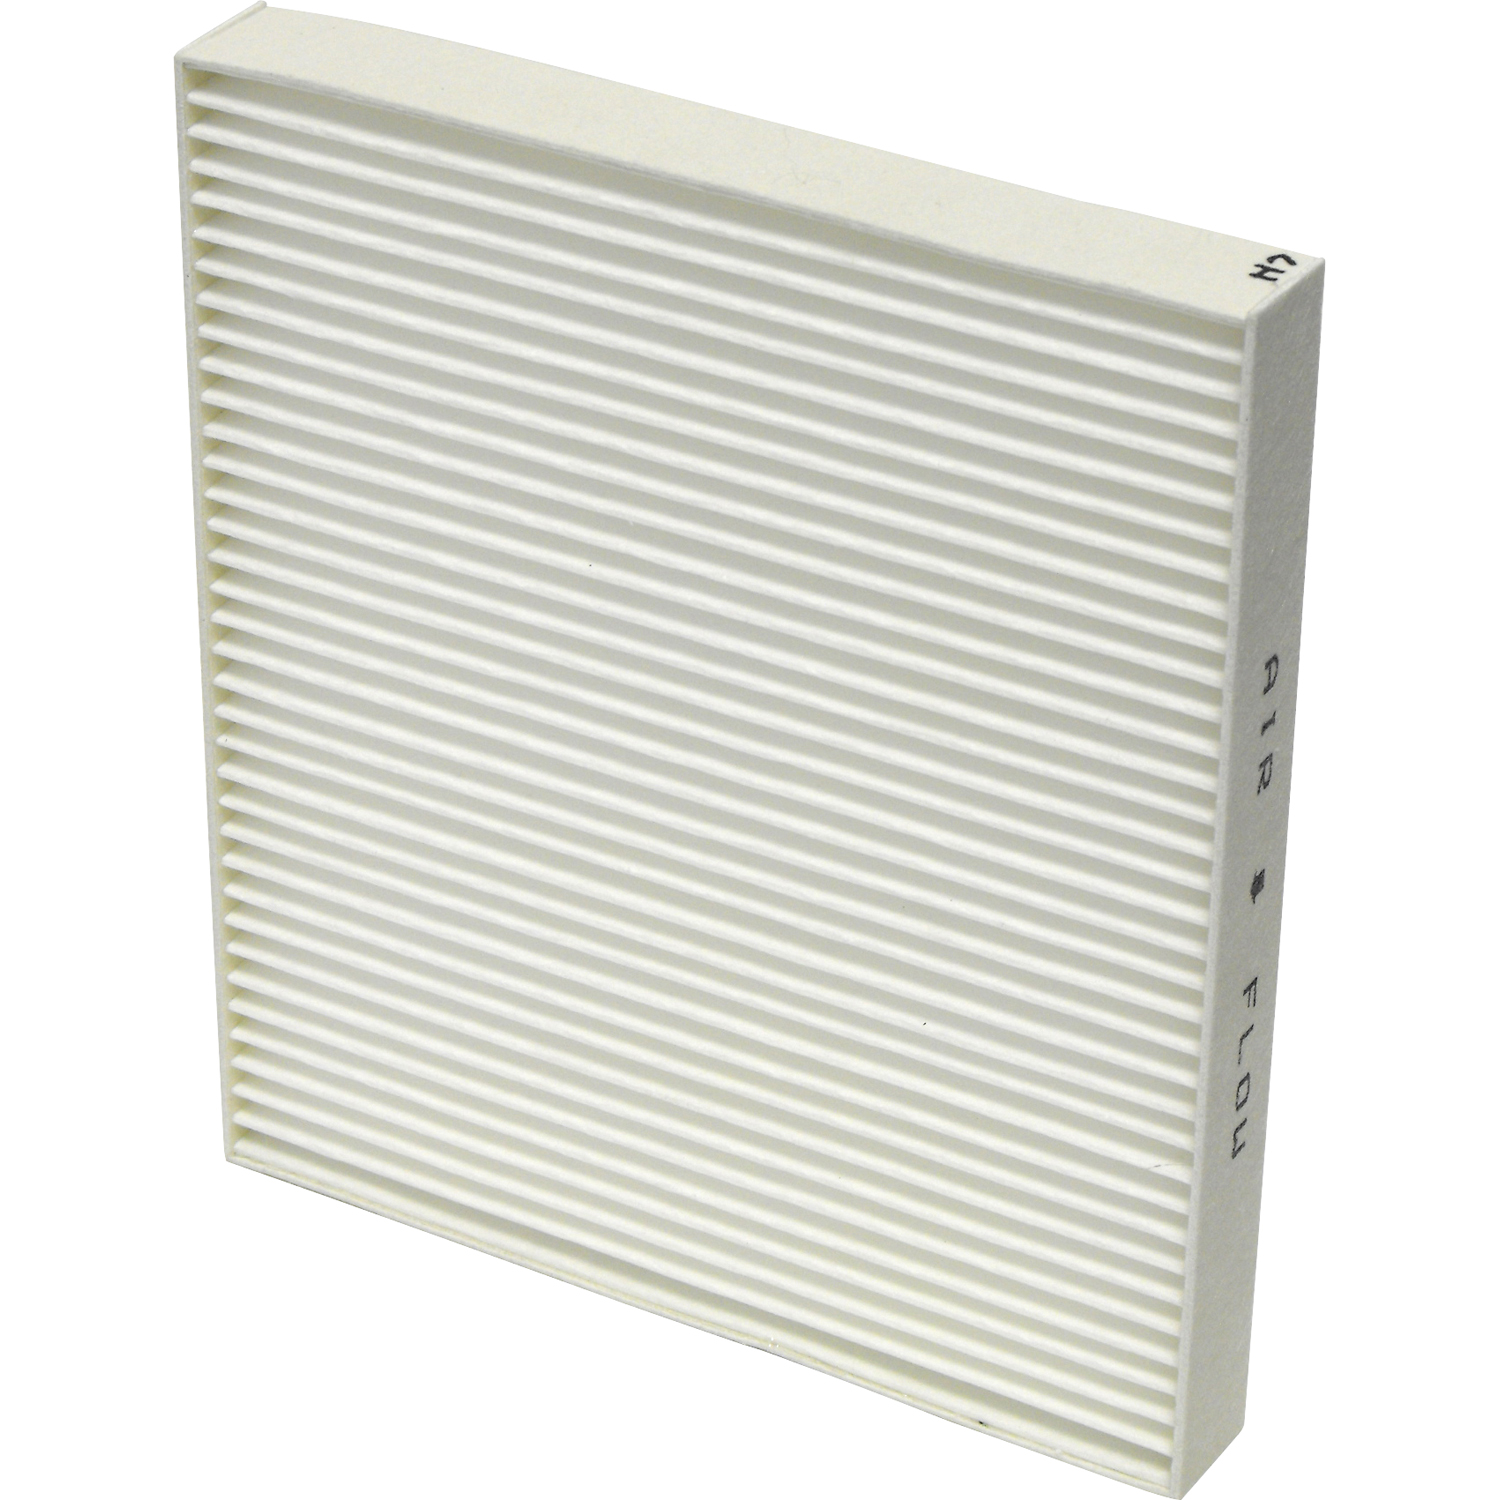 Particulate Cabin Air Filter FI 1174C